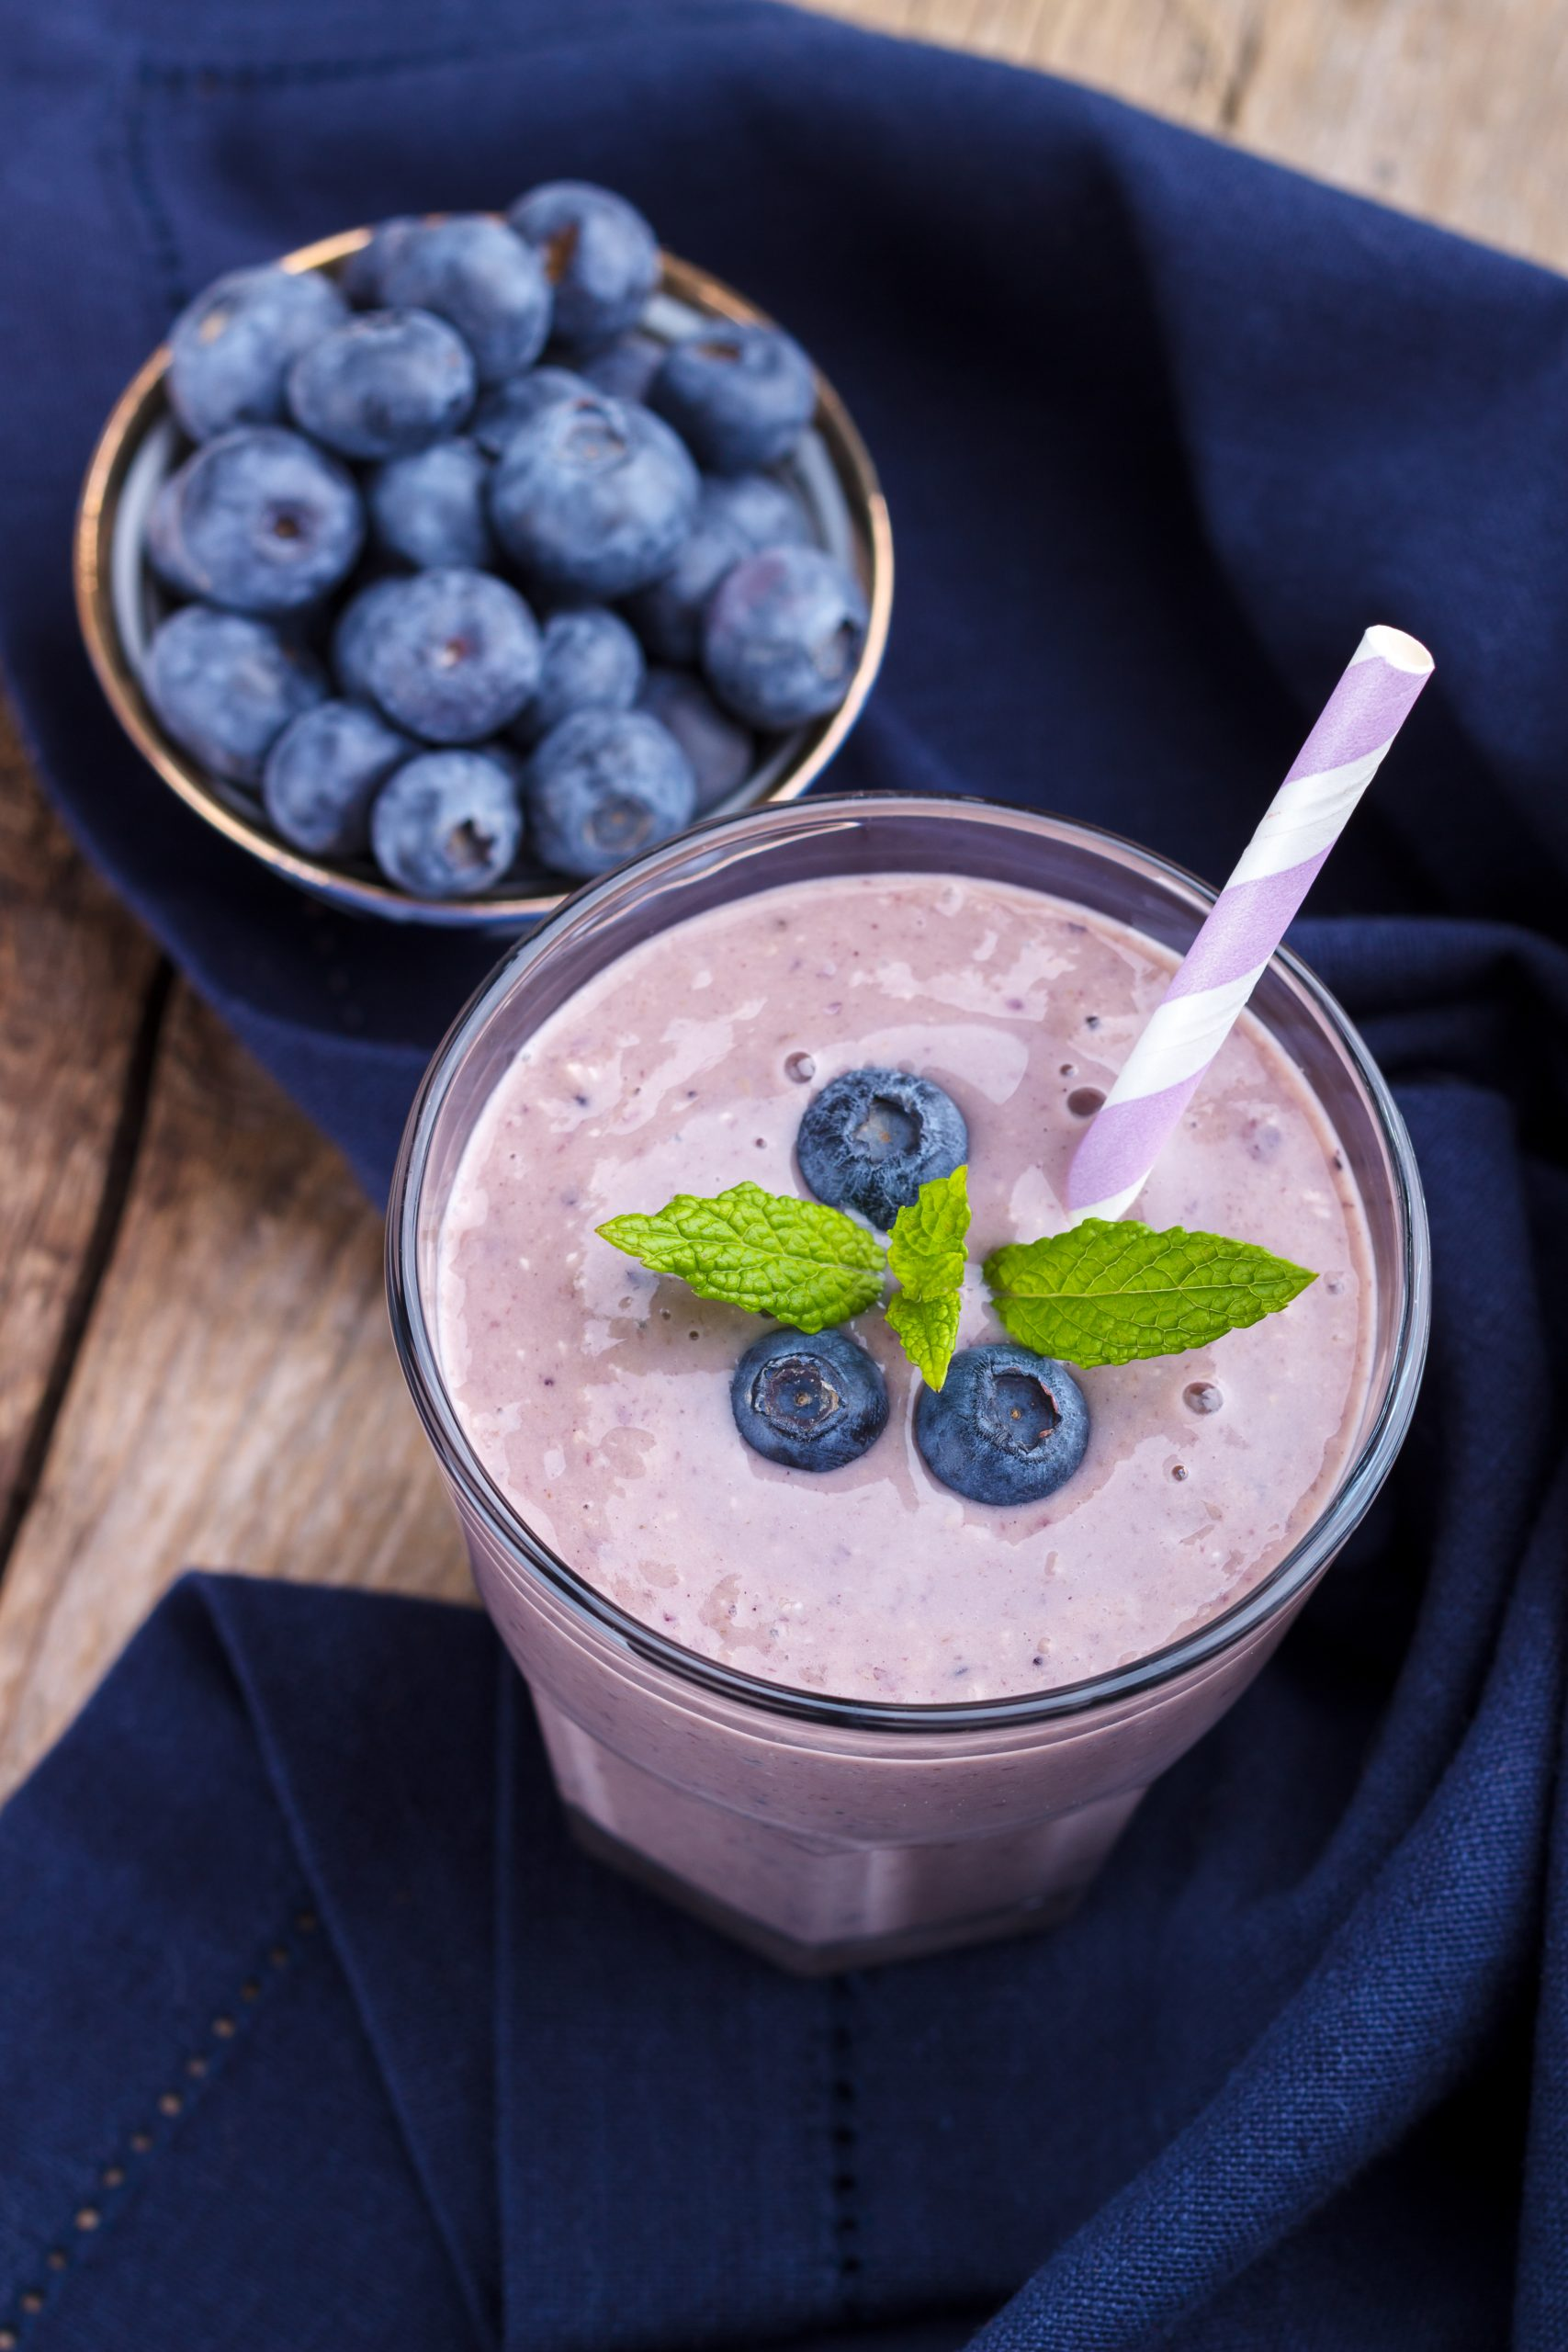 Jayne's Superfood Energized Smoothie